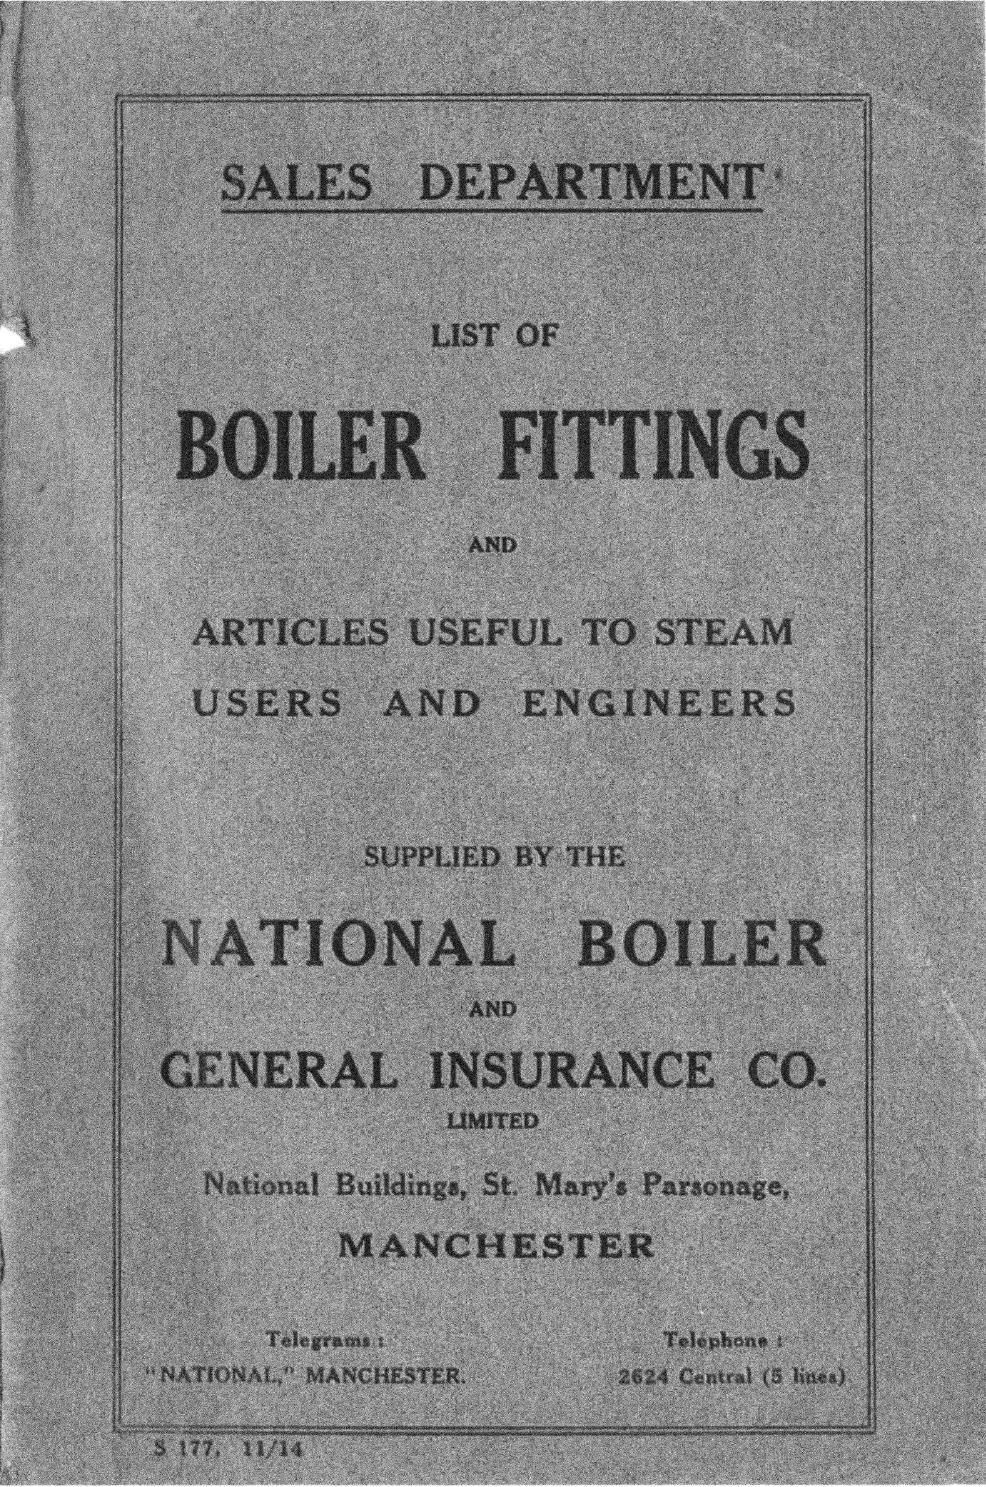 NABIC List of Boiler Fittings 1914 Catalogue Boiler